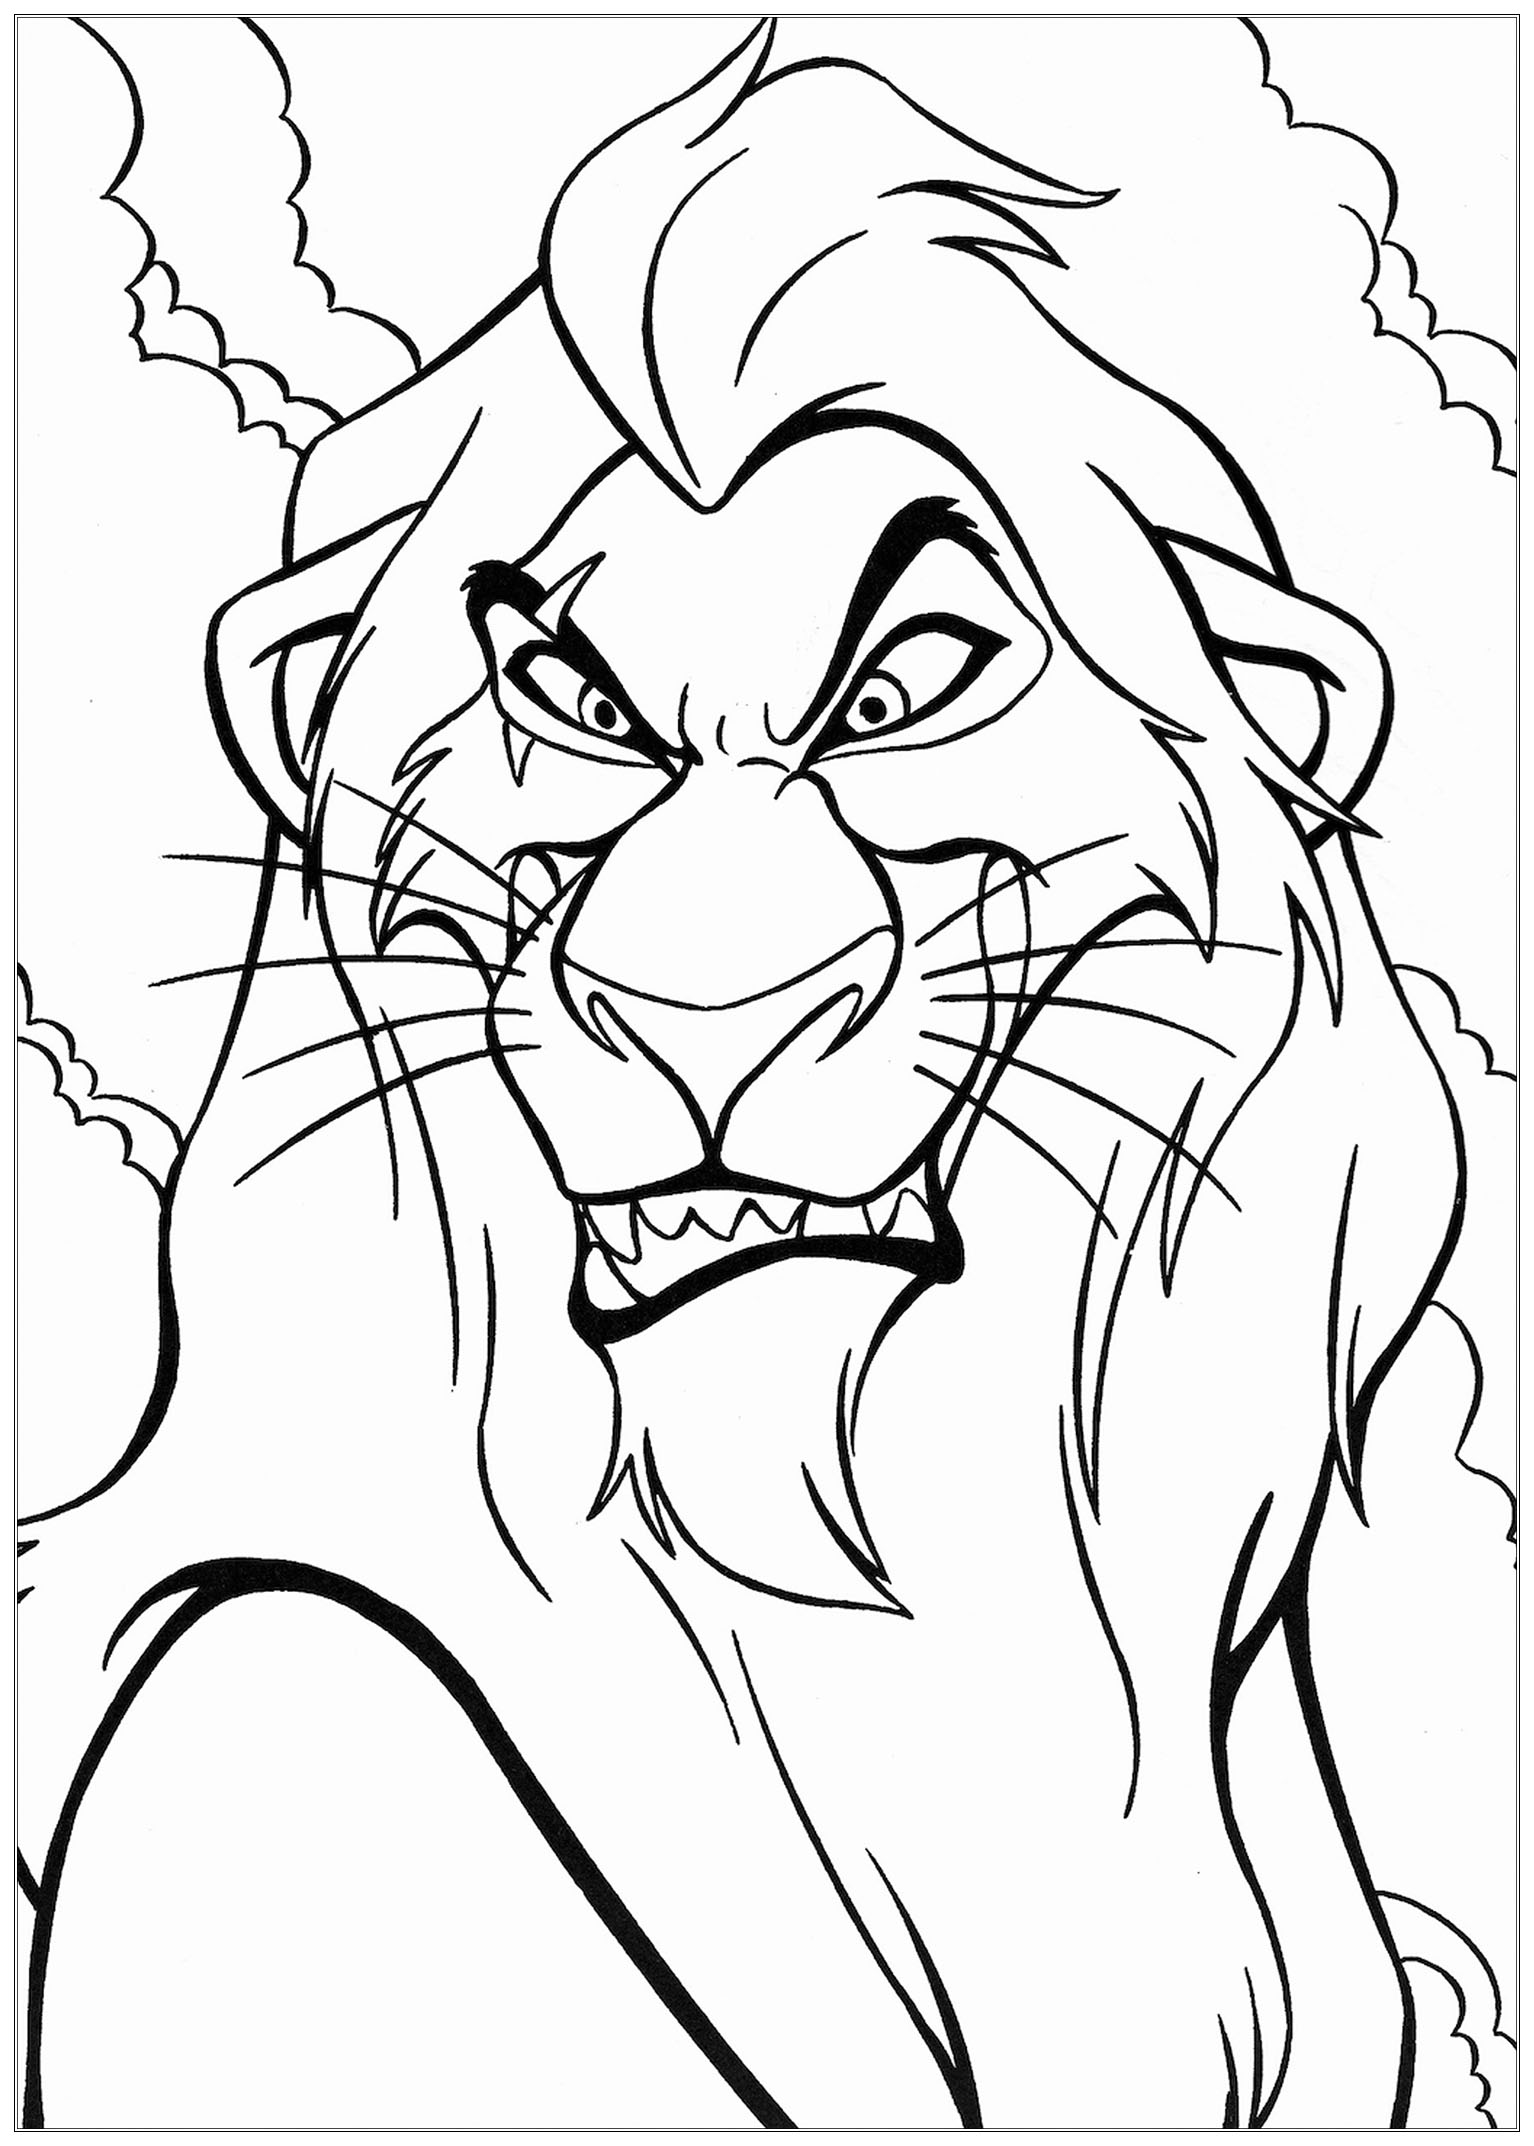 coloring the lion king lion king sheets coloring pages coloring king the lion